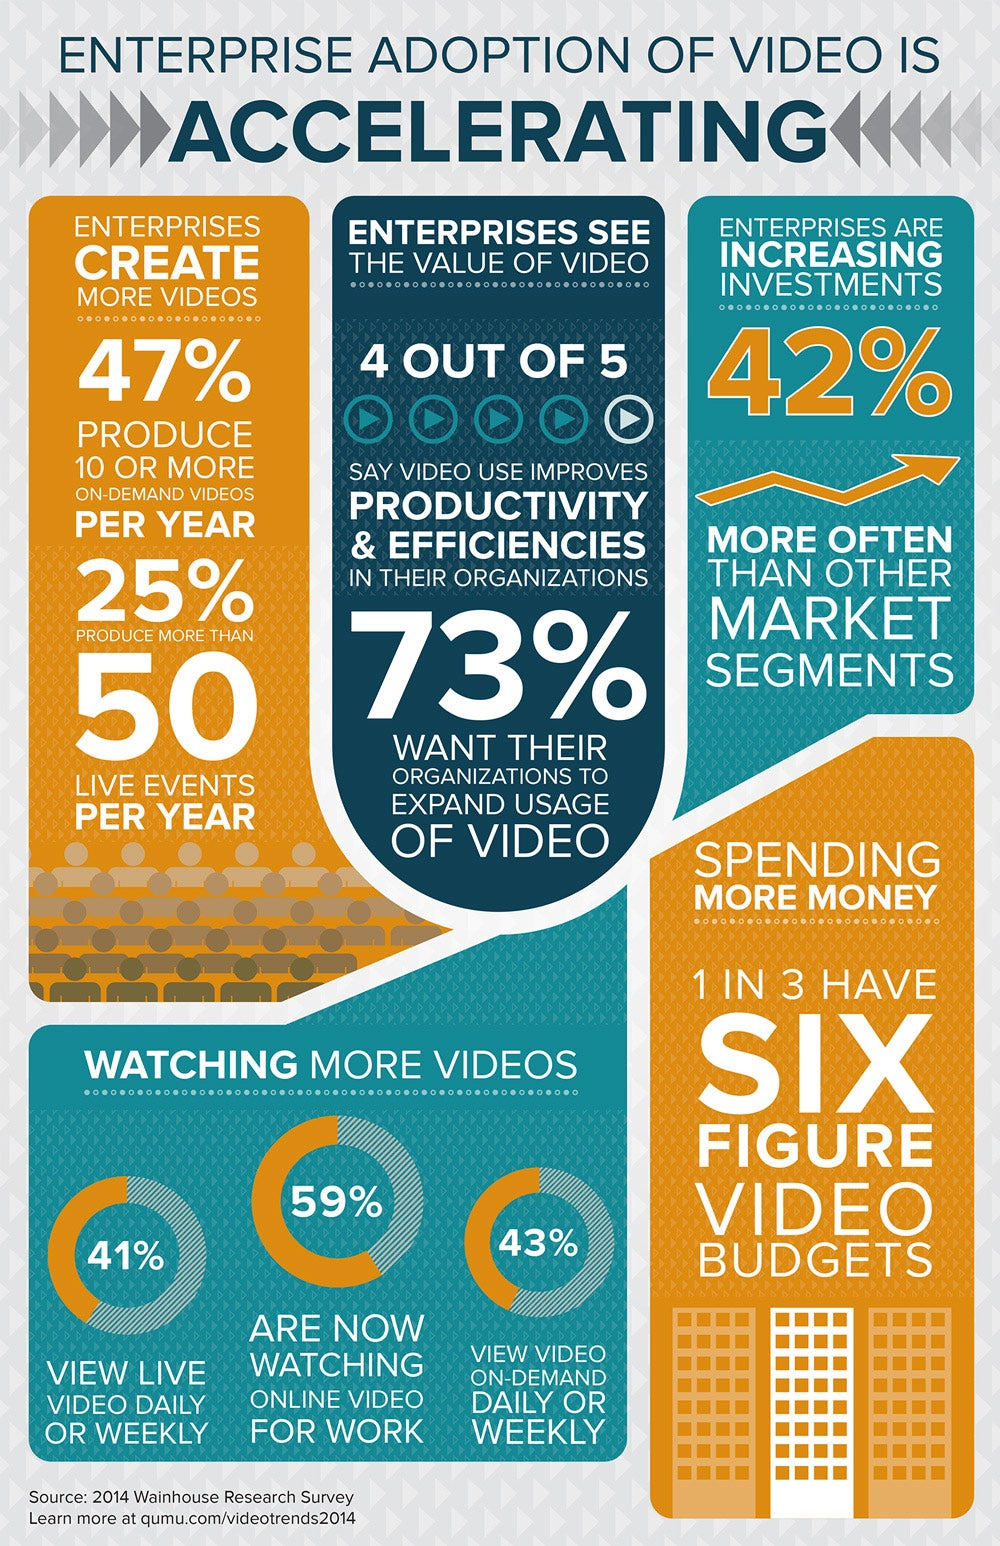 Why Businesses Are Accelerating Investment in Video Communications (Infographic)